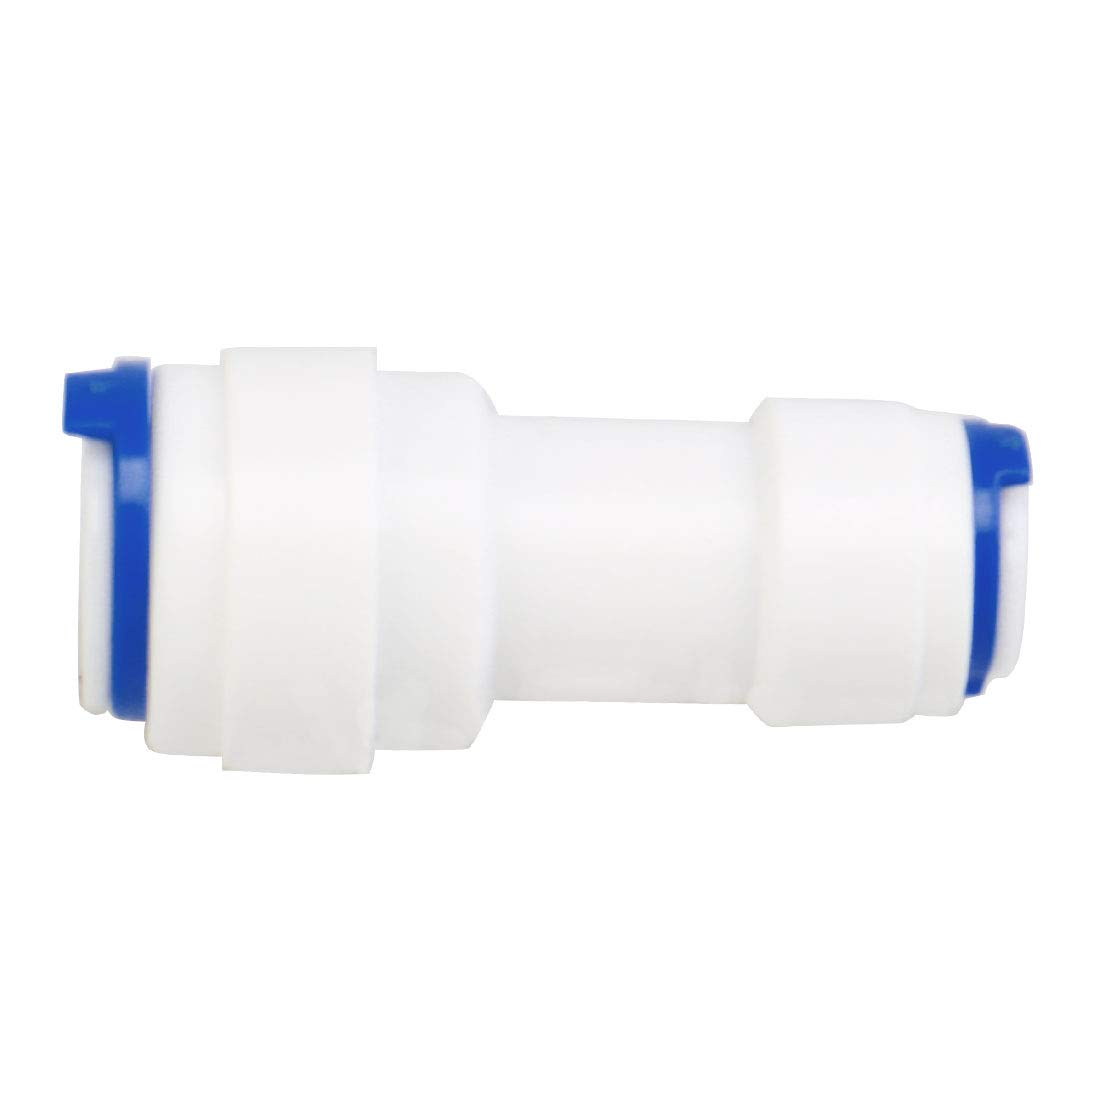 uxcell 3//8 Inch to 1//4 Inch OD Straight Quick Connect Water Purifiers Tube Fittings Push Connector Water Hose for RO Reverse Osmosis System